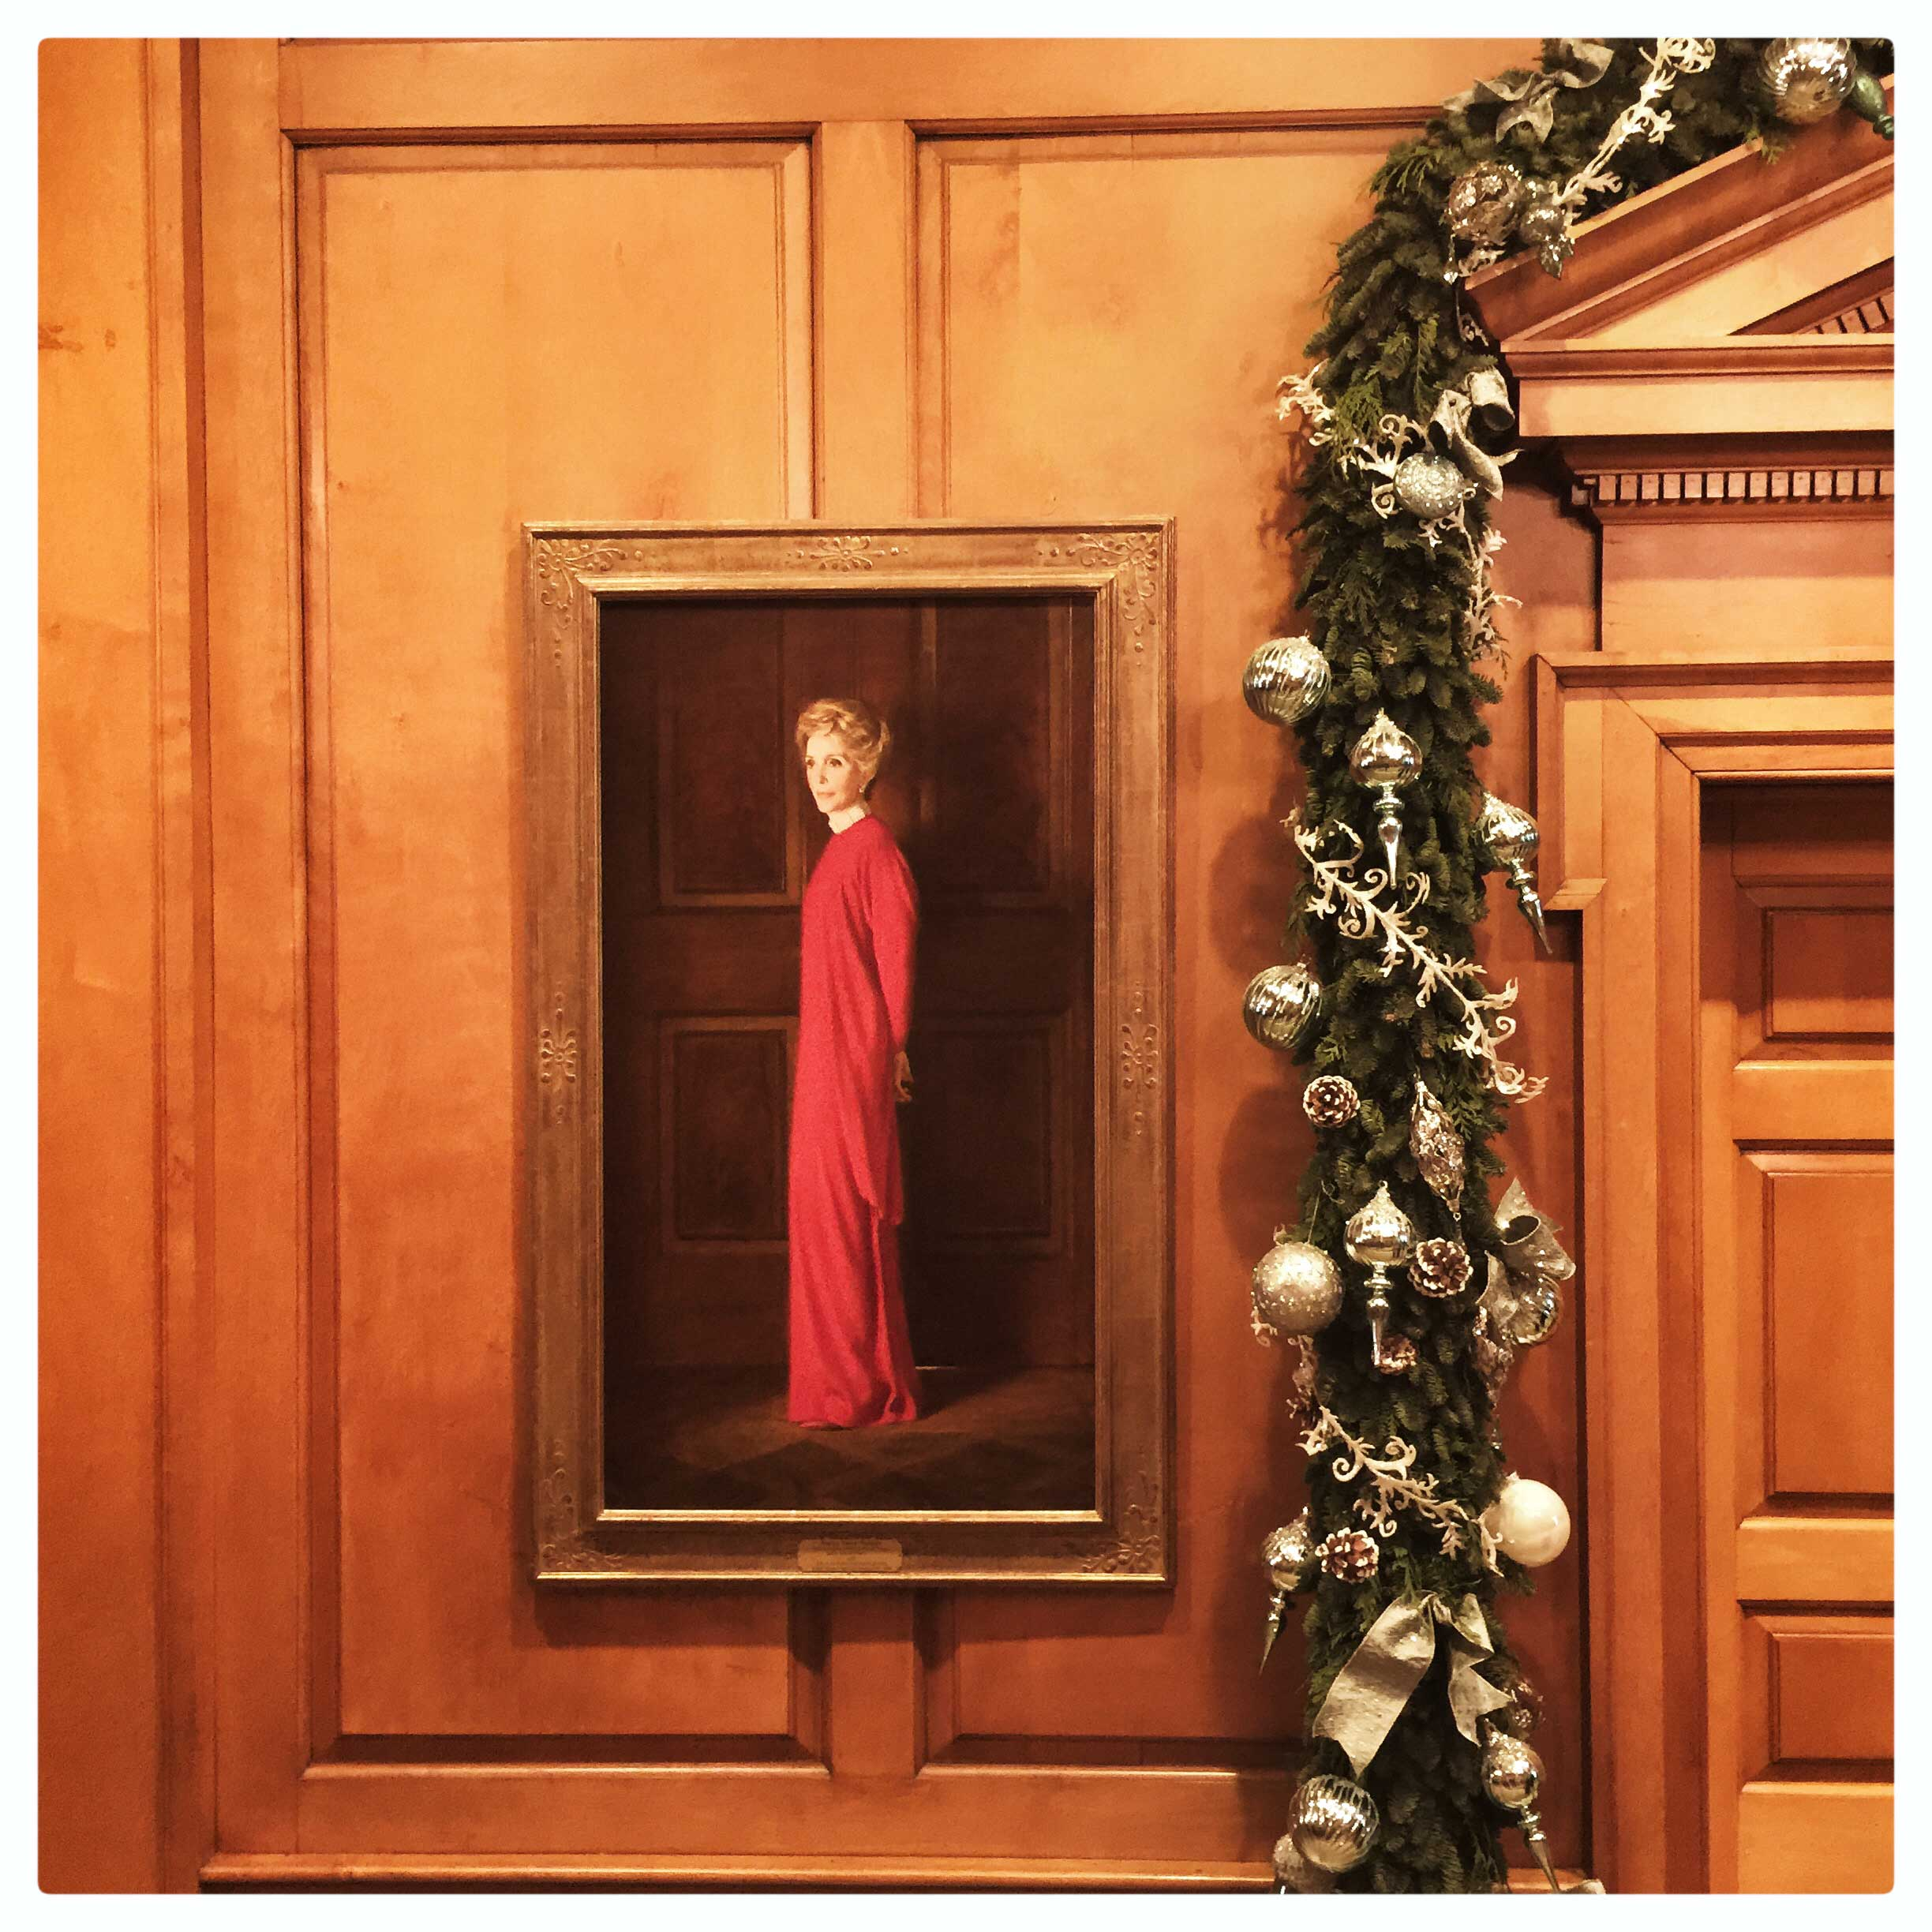 A portrait of former first lady Nancy Reagan next to holiday decorations in the East Wing of the White House.